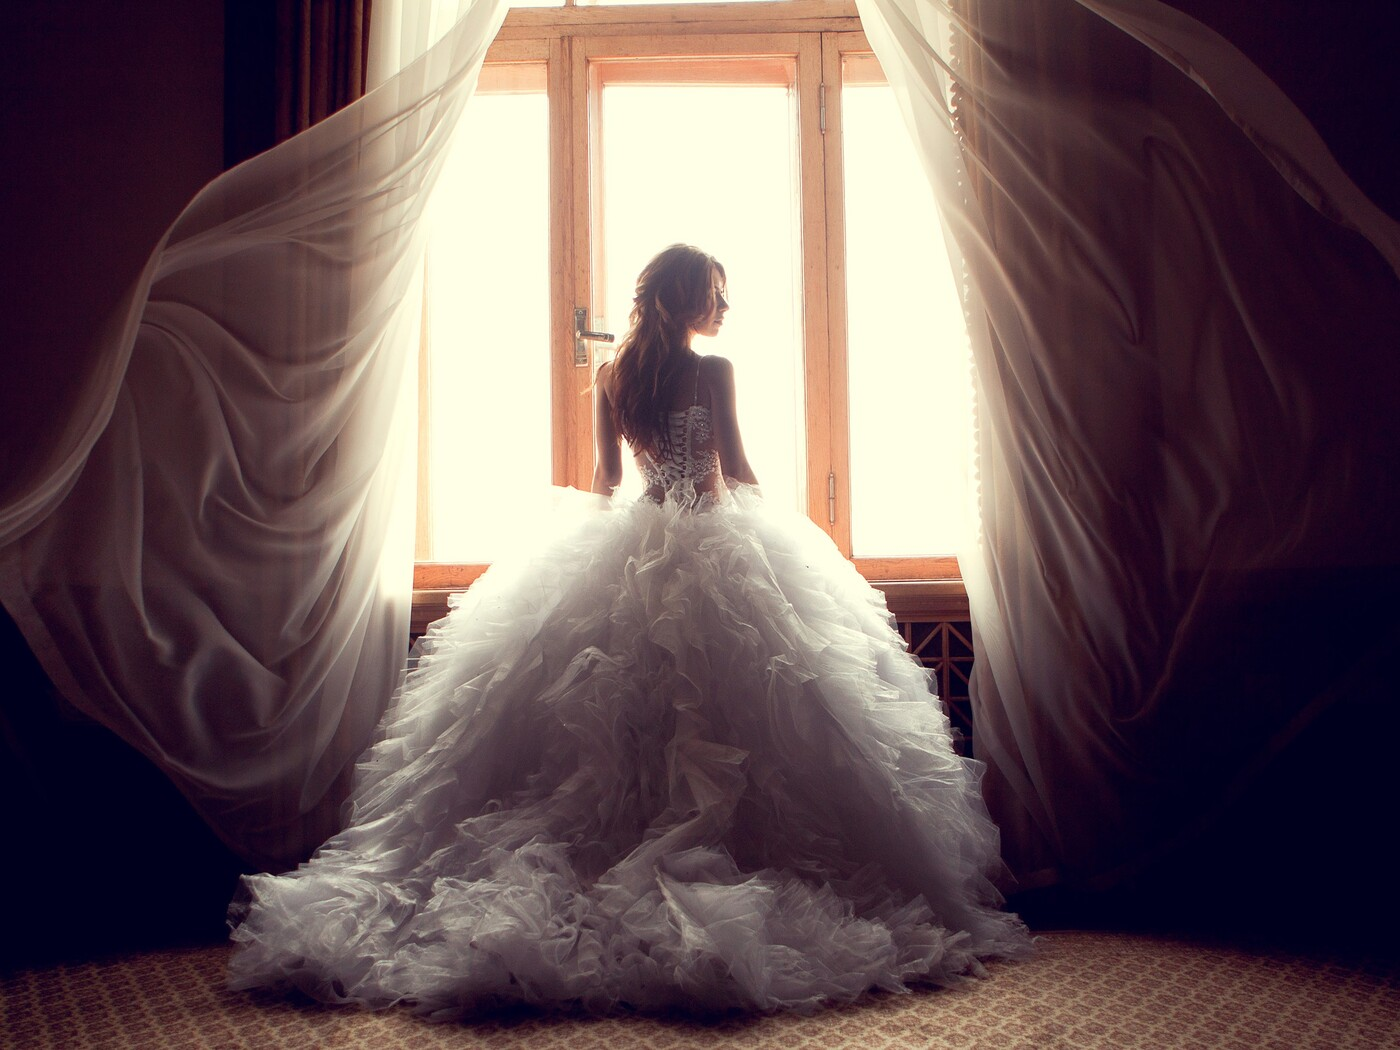 wedding-dress-bride-img.jpg